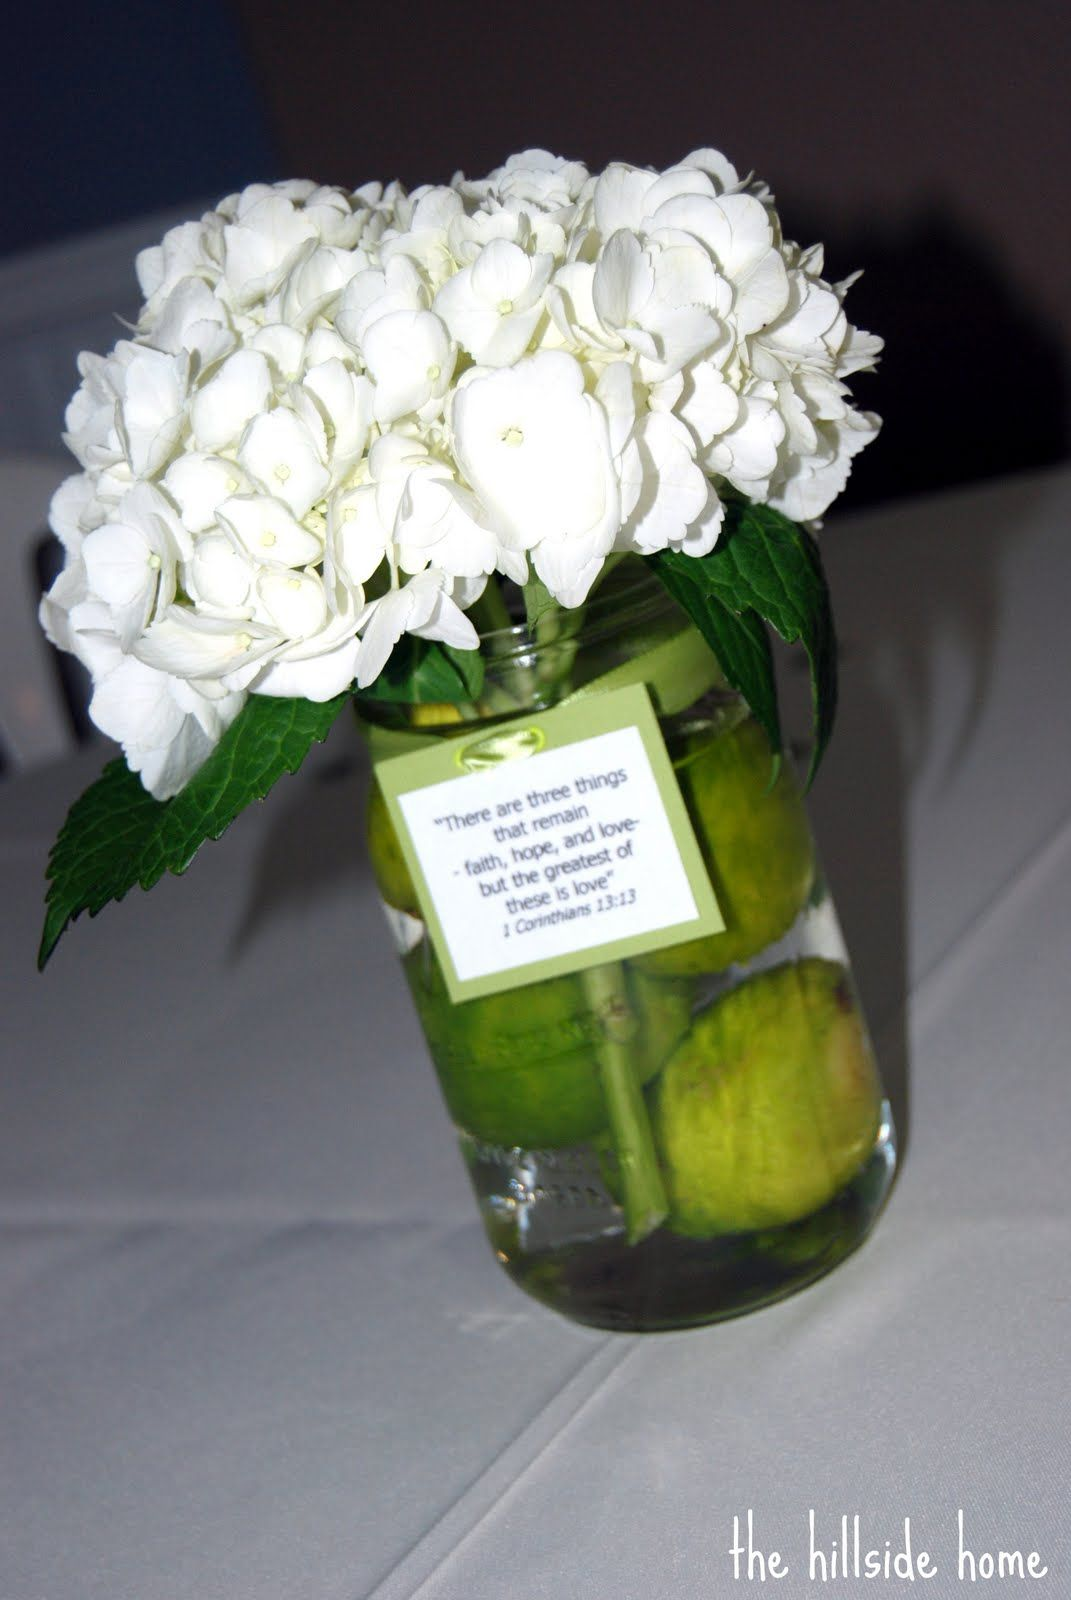 Mason jar centerpieces nice touch with adding the ribbon with a